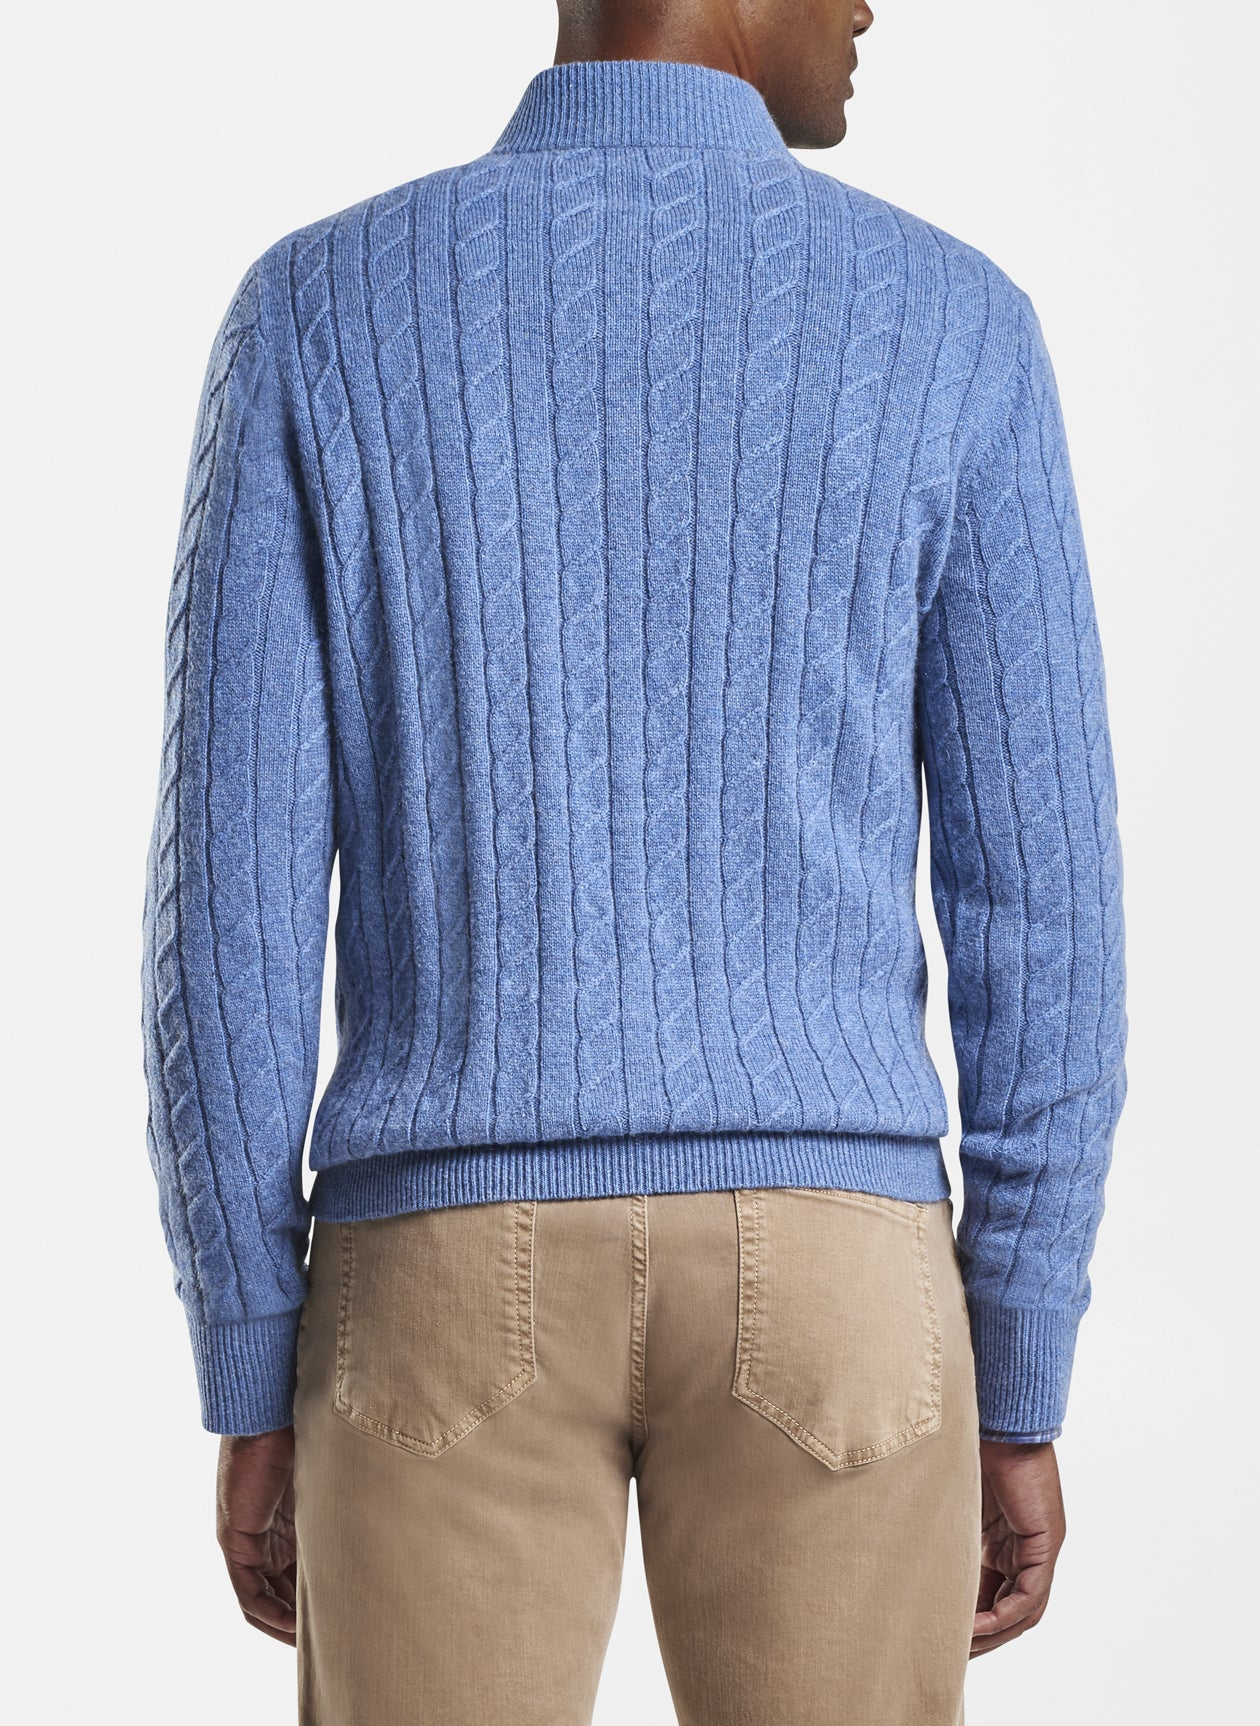 Wool Cable Quarter-Zip in Sailor Blue